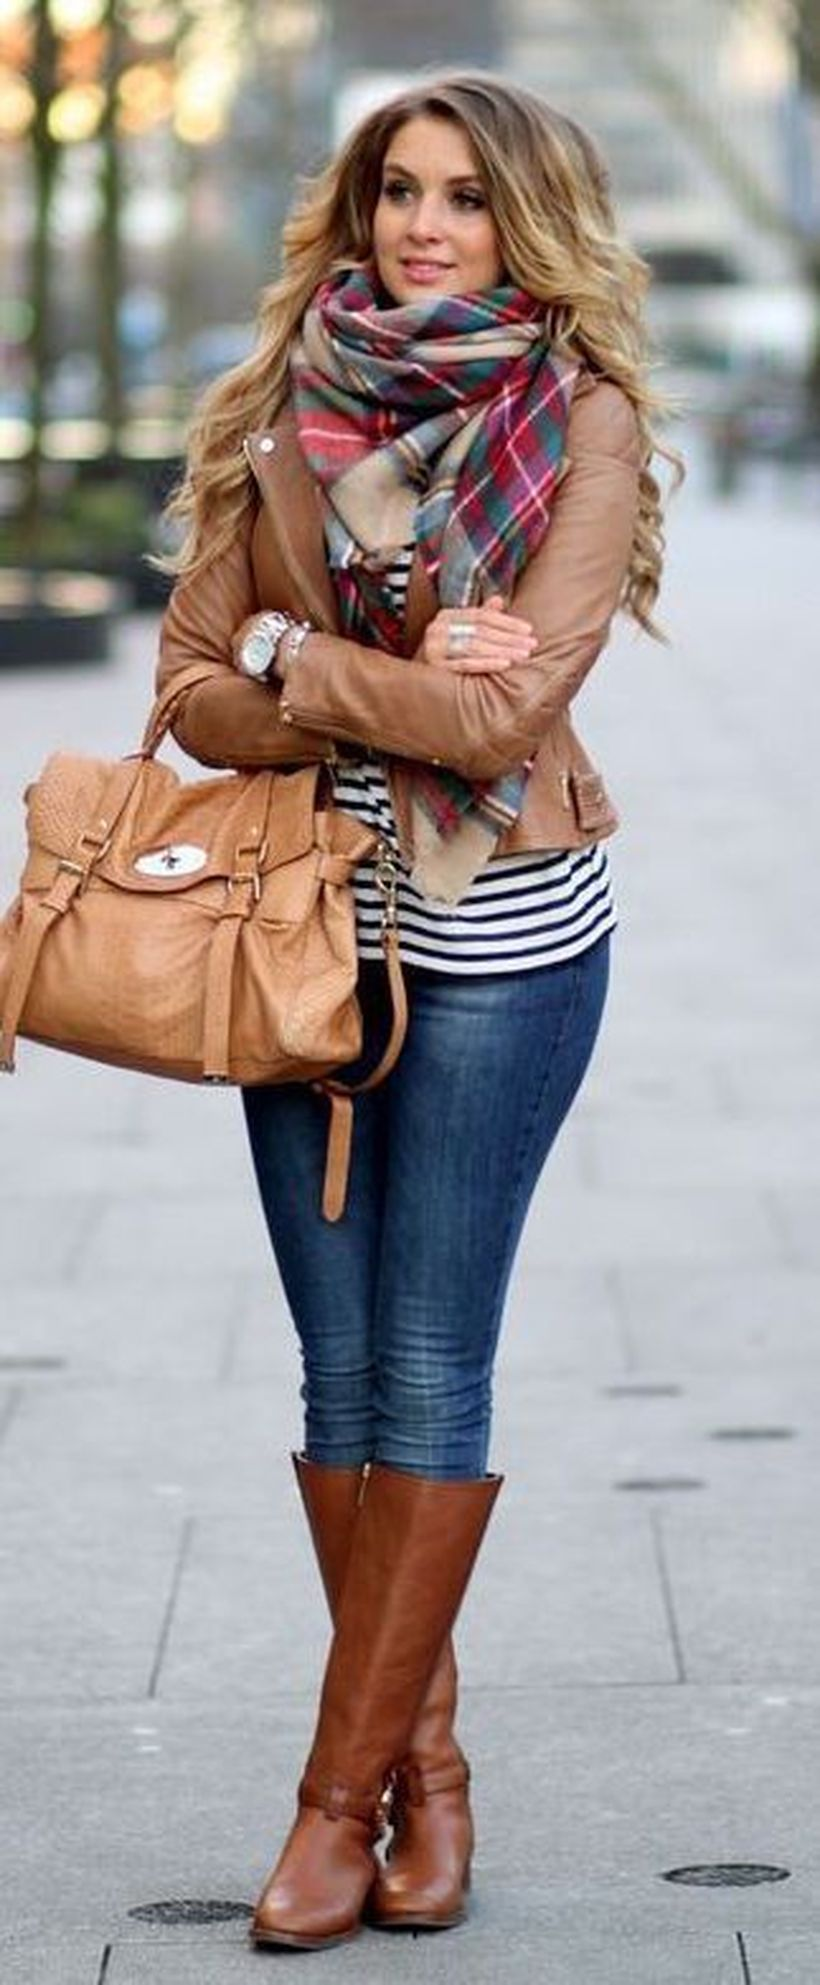 Best casual fall night outfits ideas for going out 29